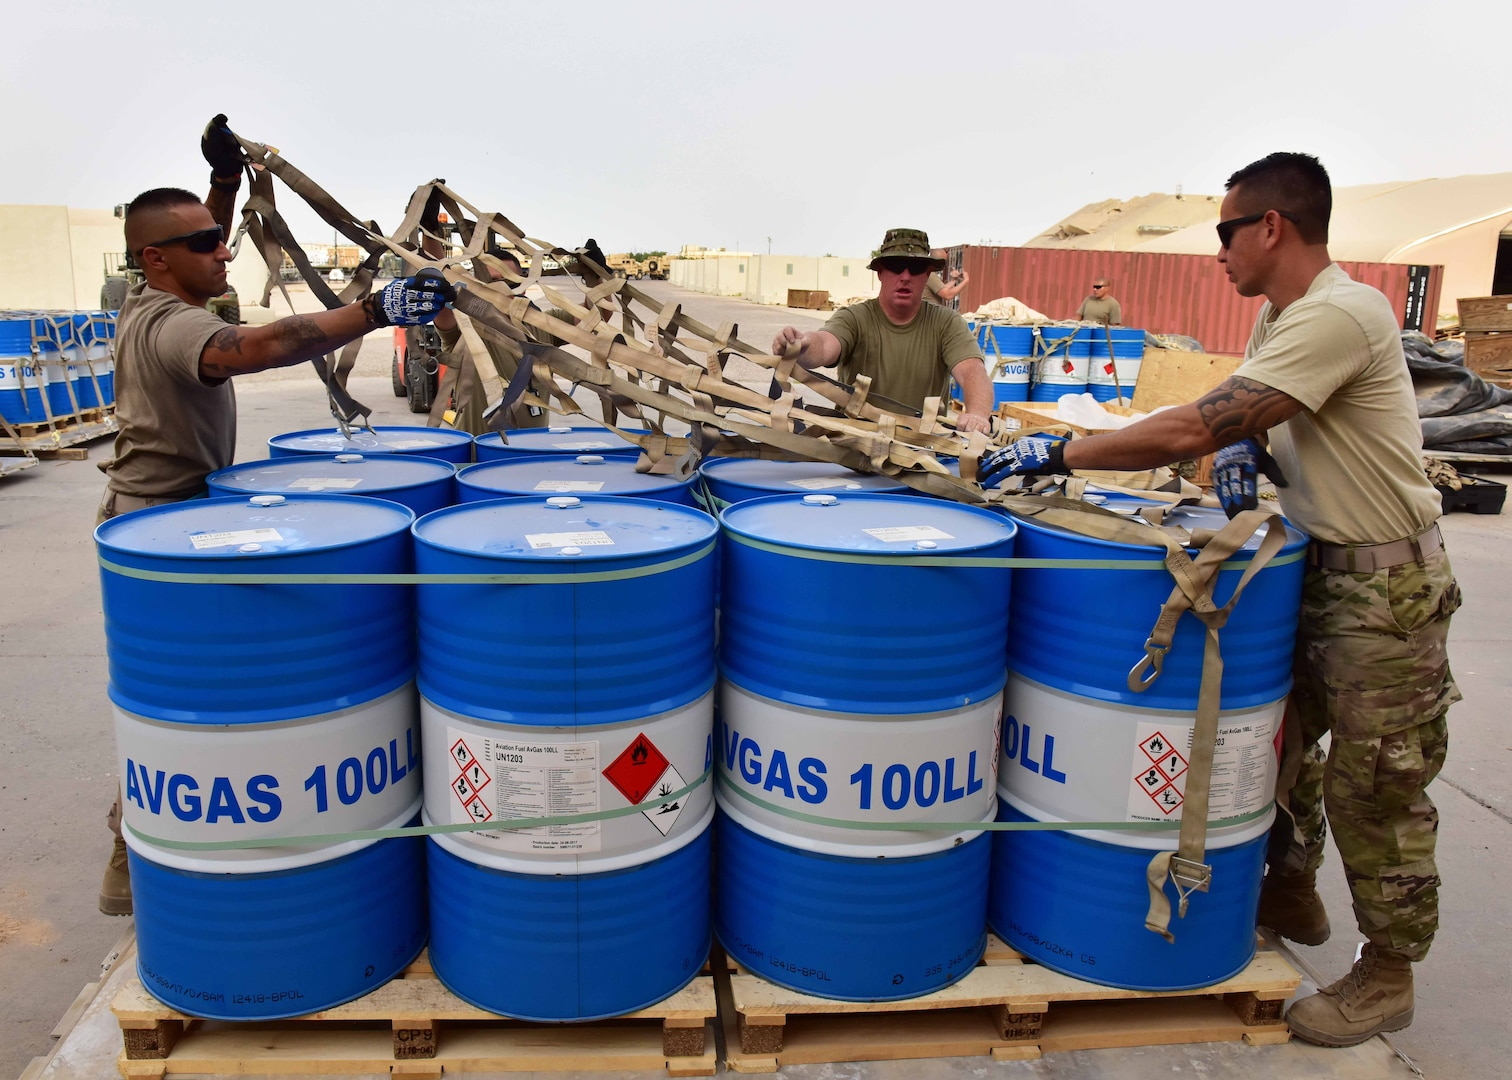 The 386th Expeditionary Logistics Readiness Squadron's fuels management flight is responsible for supplying approximately 150,000 gallons of fuel a day supporting Operation Inherent Resolve. The POL team works tirelessly to improve fuel efficiency, saving the Defense Logistics Agency and U.S. Air Force time and money. Maintenance upgrades to the fuel distribution structure is currently underway with a plan to redesign the system for effective expeditionary results.